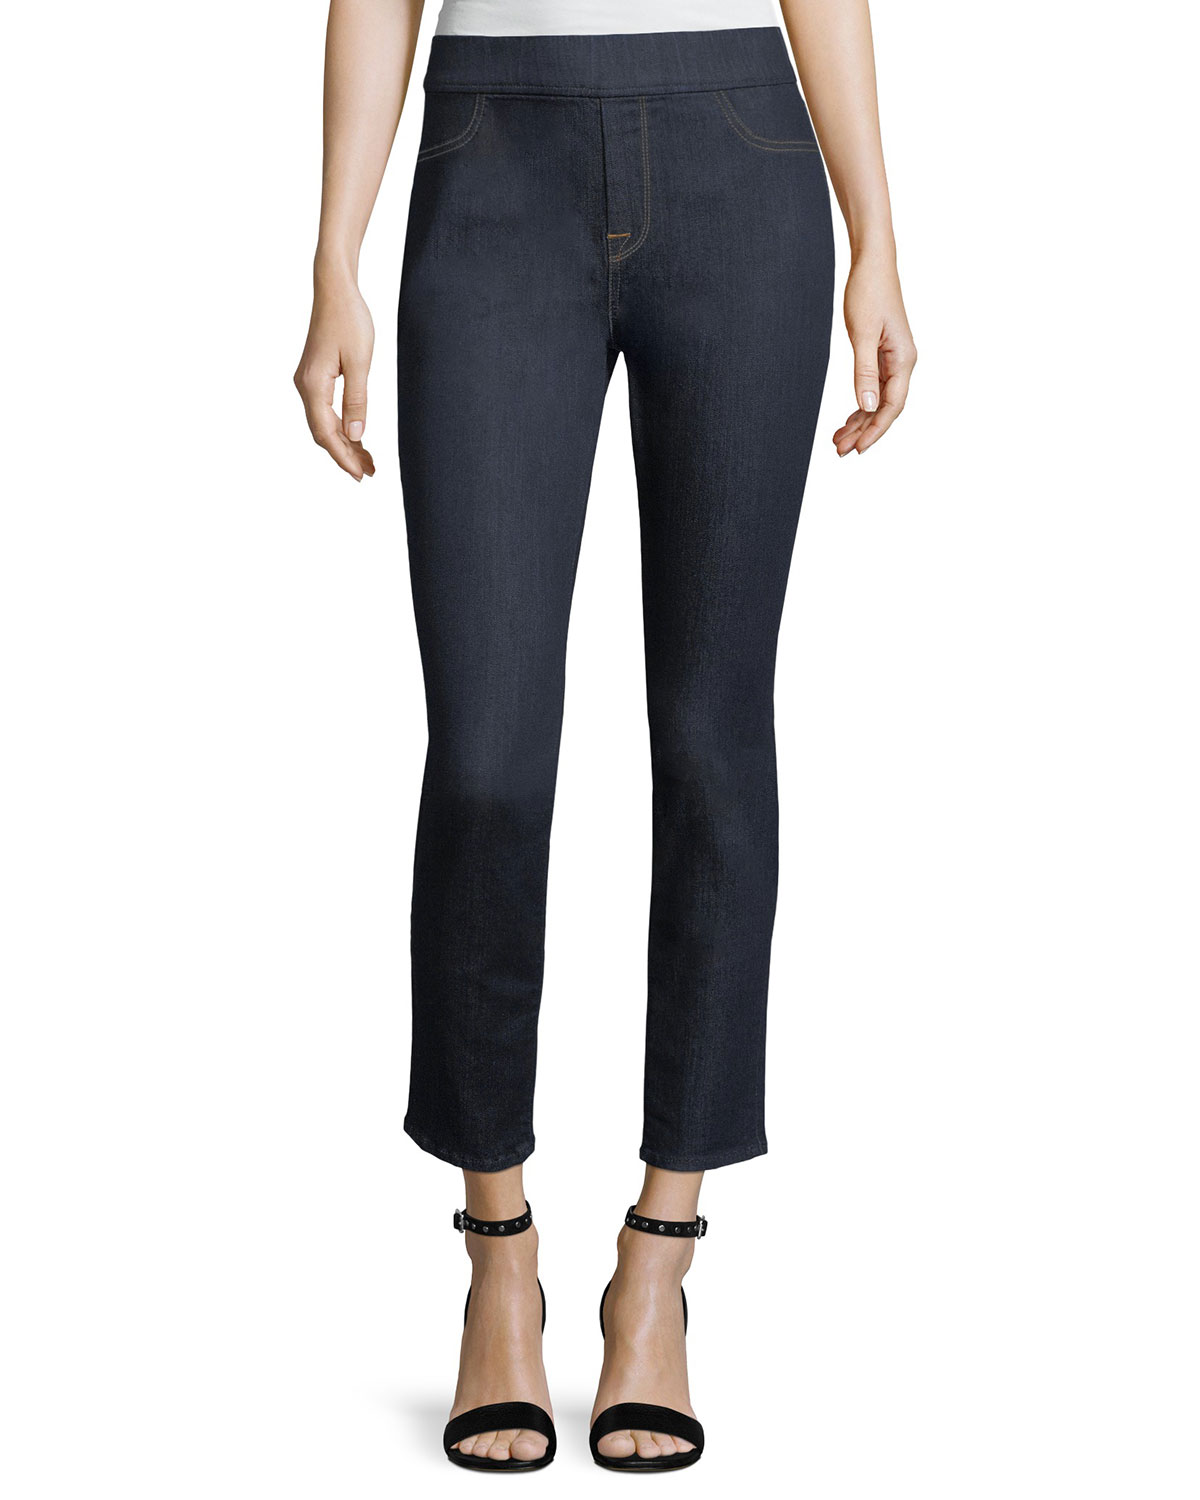 Riche Touch Rinsed Night Comfort Skinny Ankle Jeans